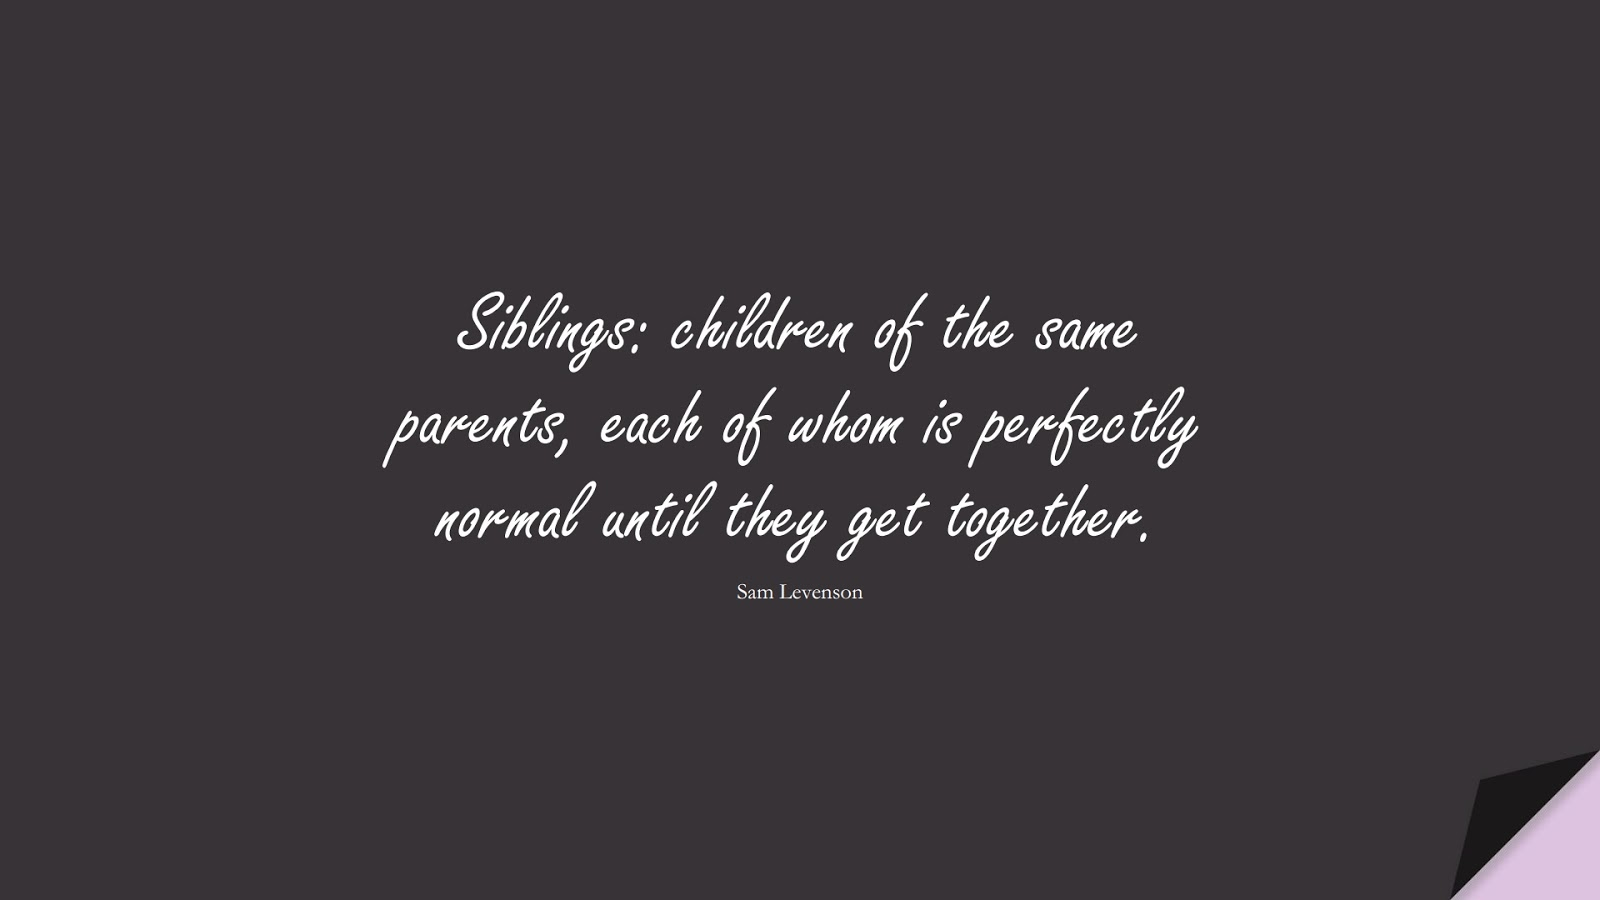 Siblings: children of the same parents, each of whom is perfectly normal until they get together. (Sam Levenson);  #FamilyQuotes